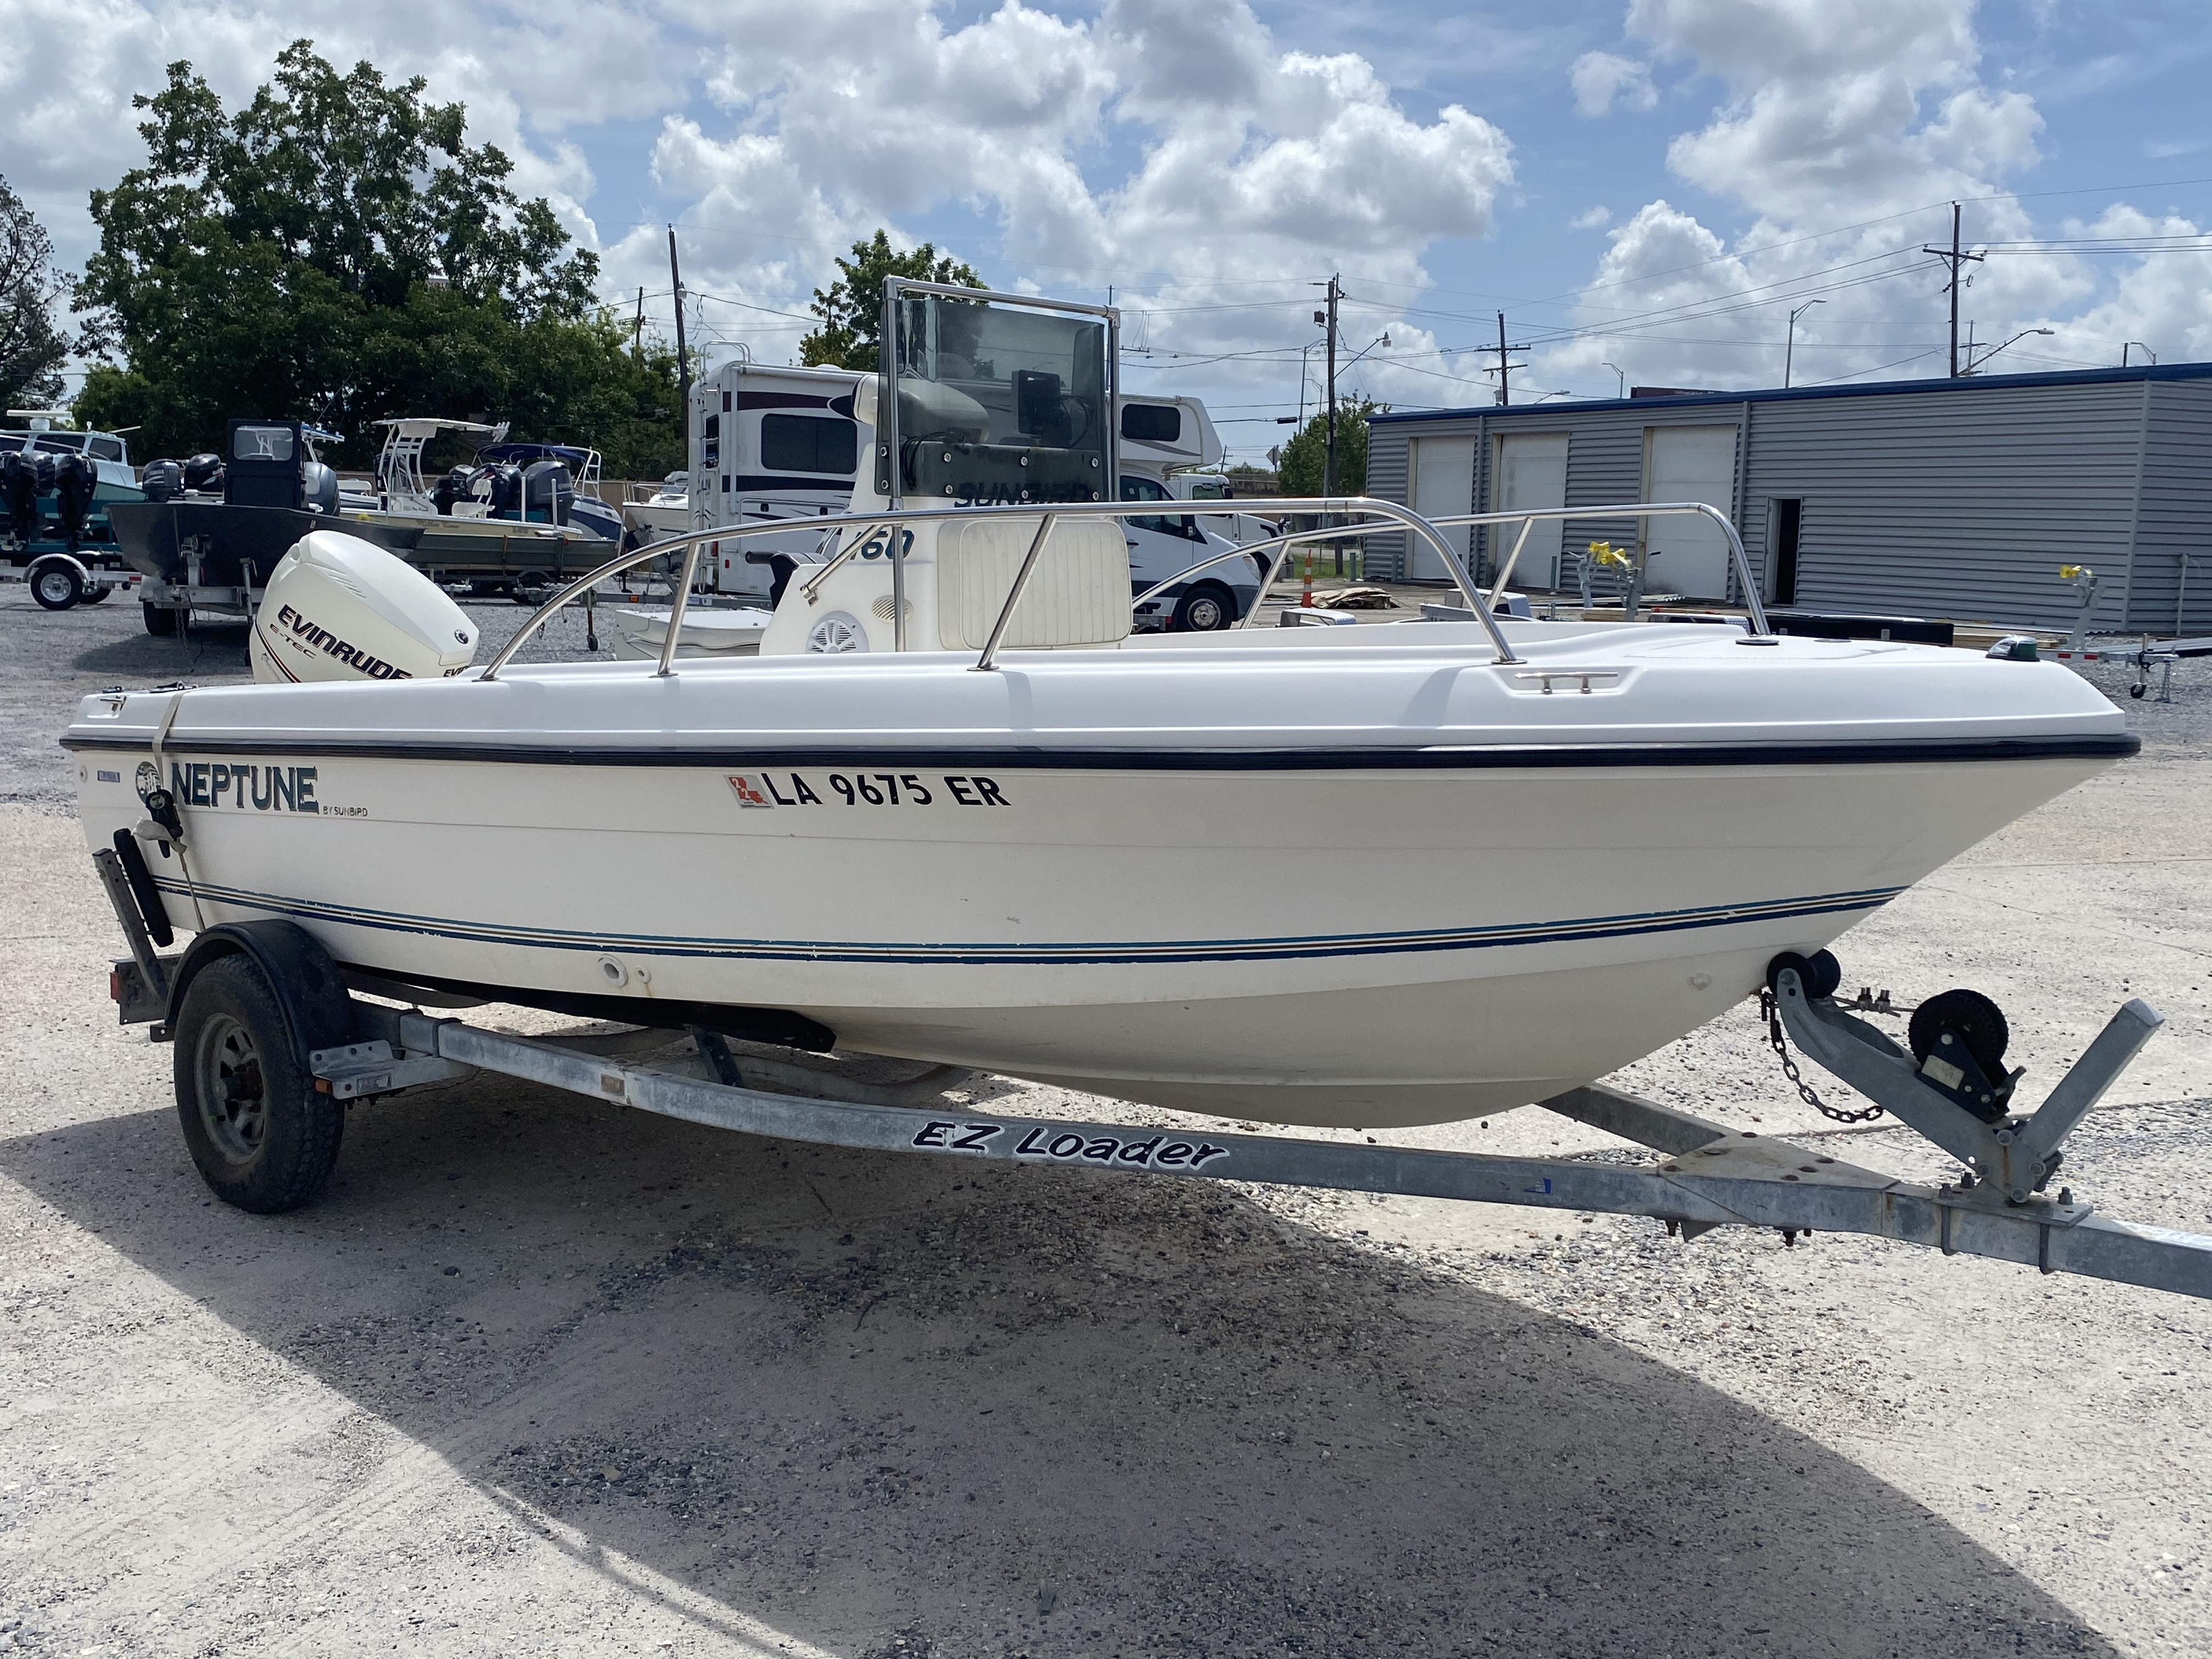 1996 Sunbird boat for sale, model of the boat is Neptune 160 & Image # 7 of 14